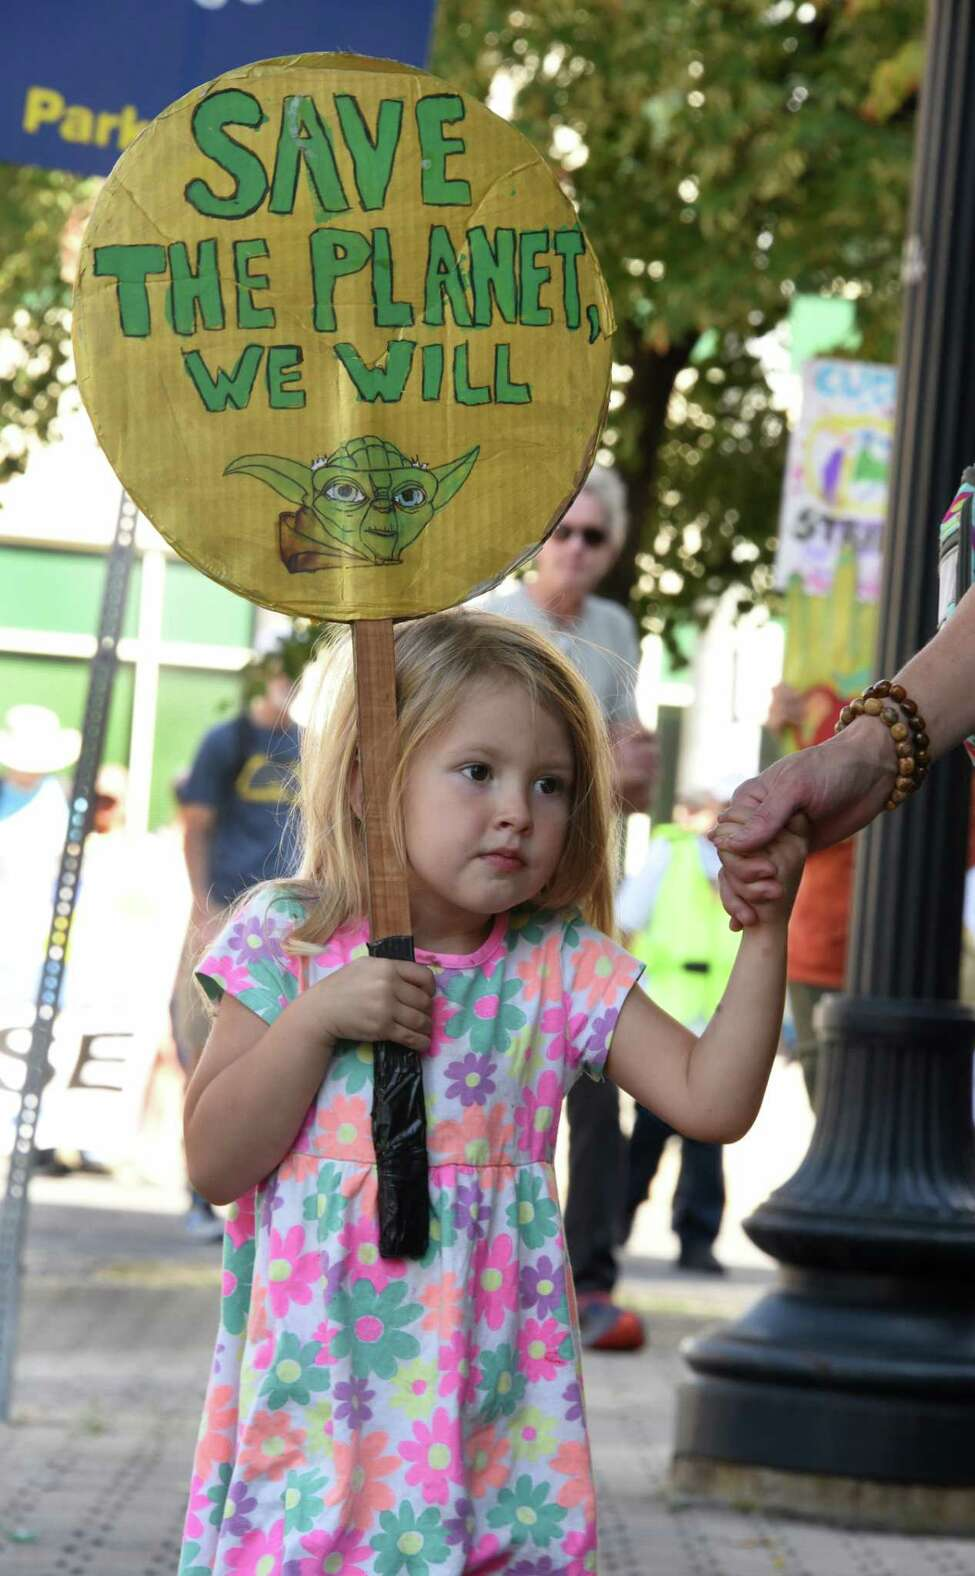 Nora Breen, 4, of Clarksville walks down Broadway as she and Capital District residents participate in the international student climate strike on Friday, Sept. 20, 2019 in Albany, N.Y. (Lori Van Buren/Times Union)